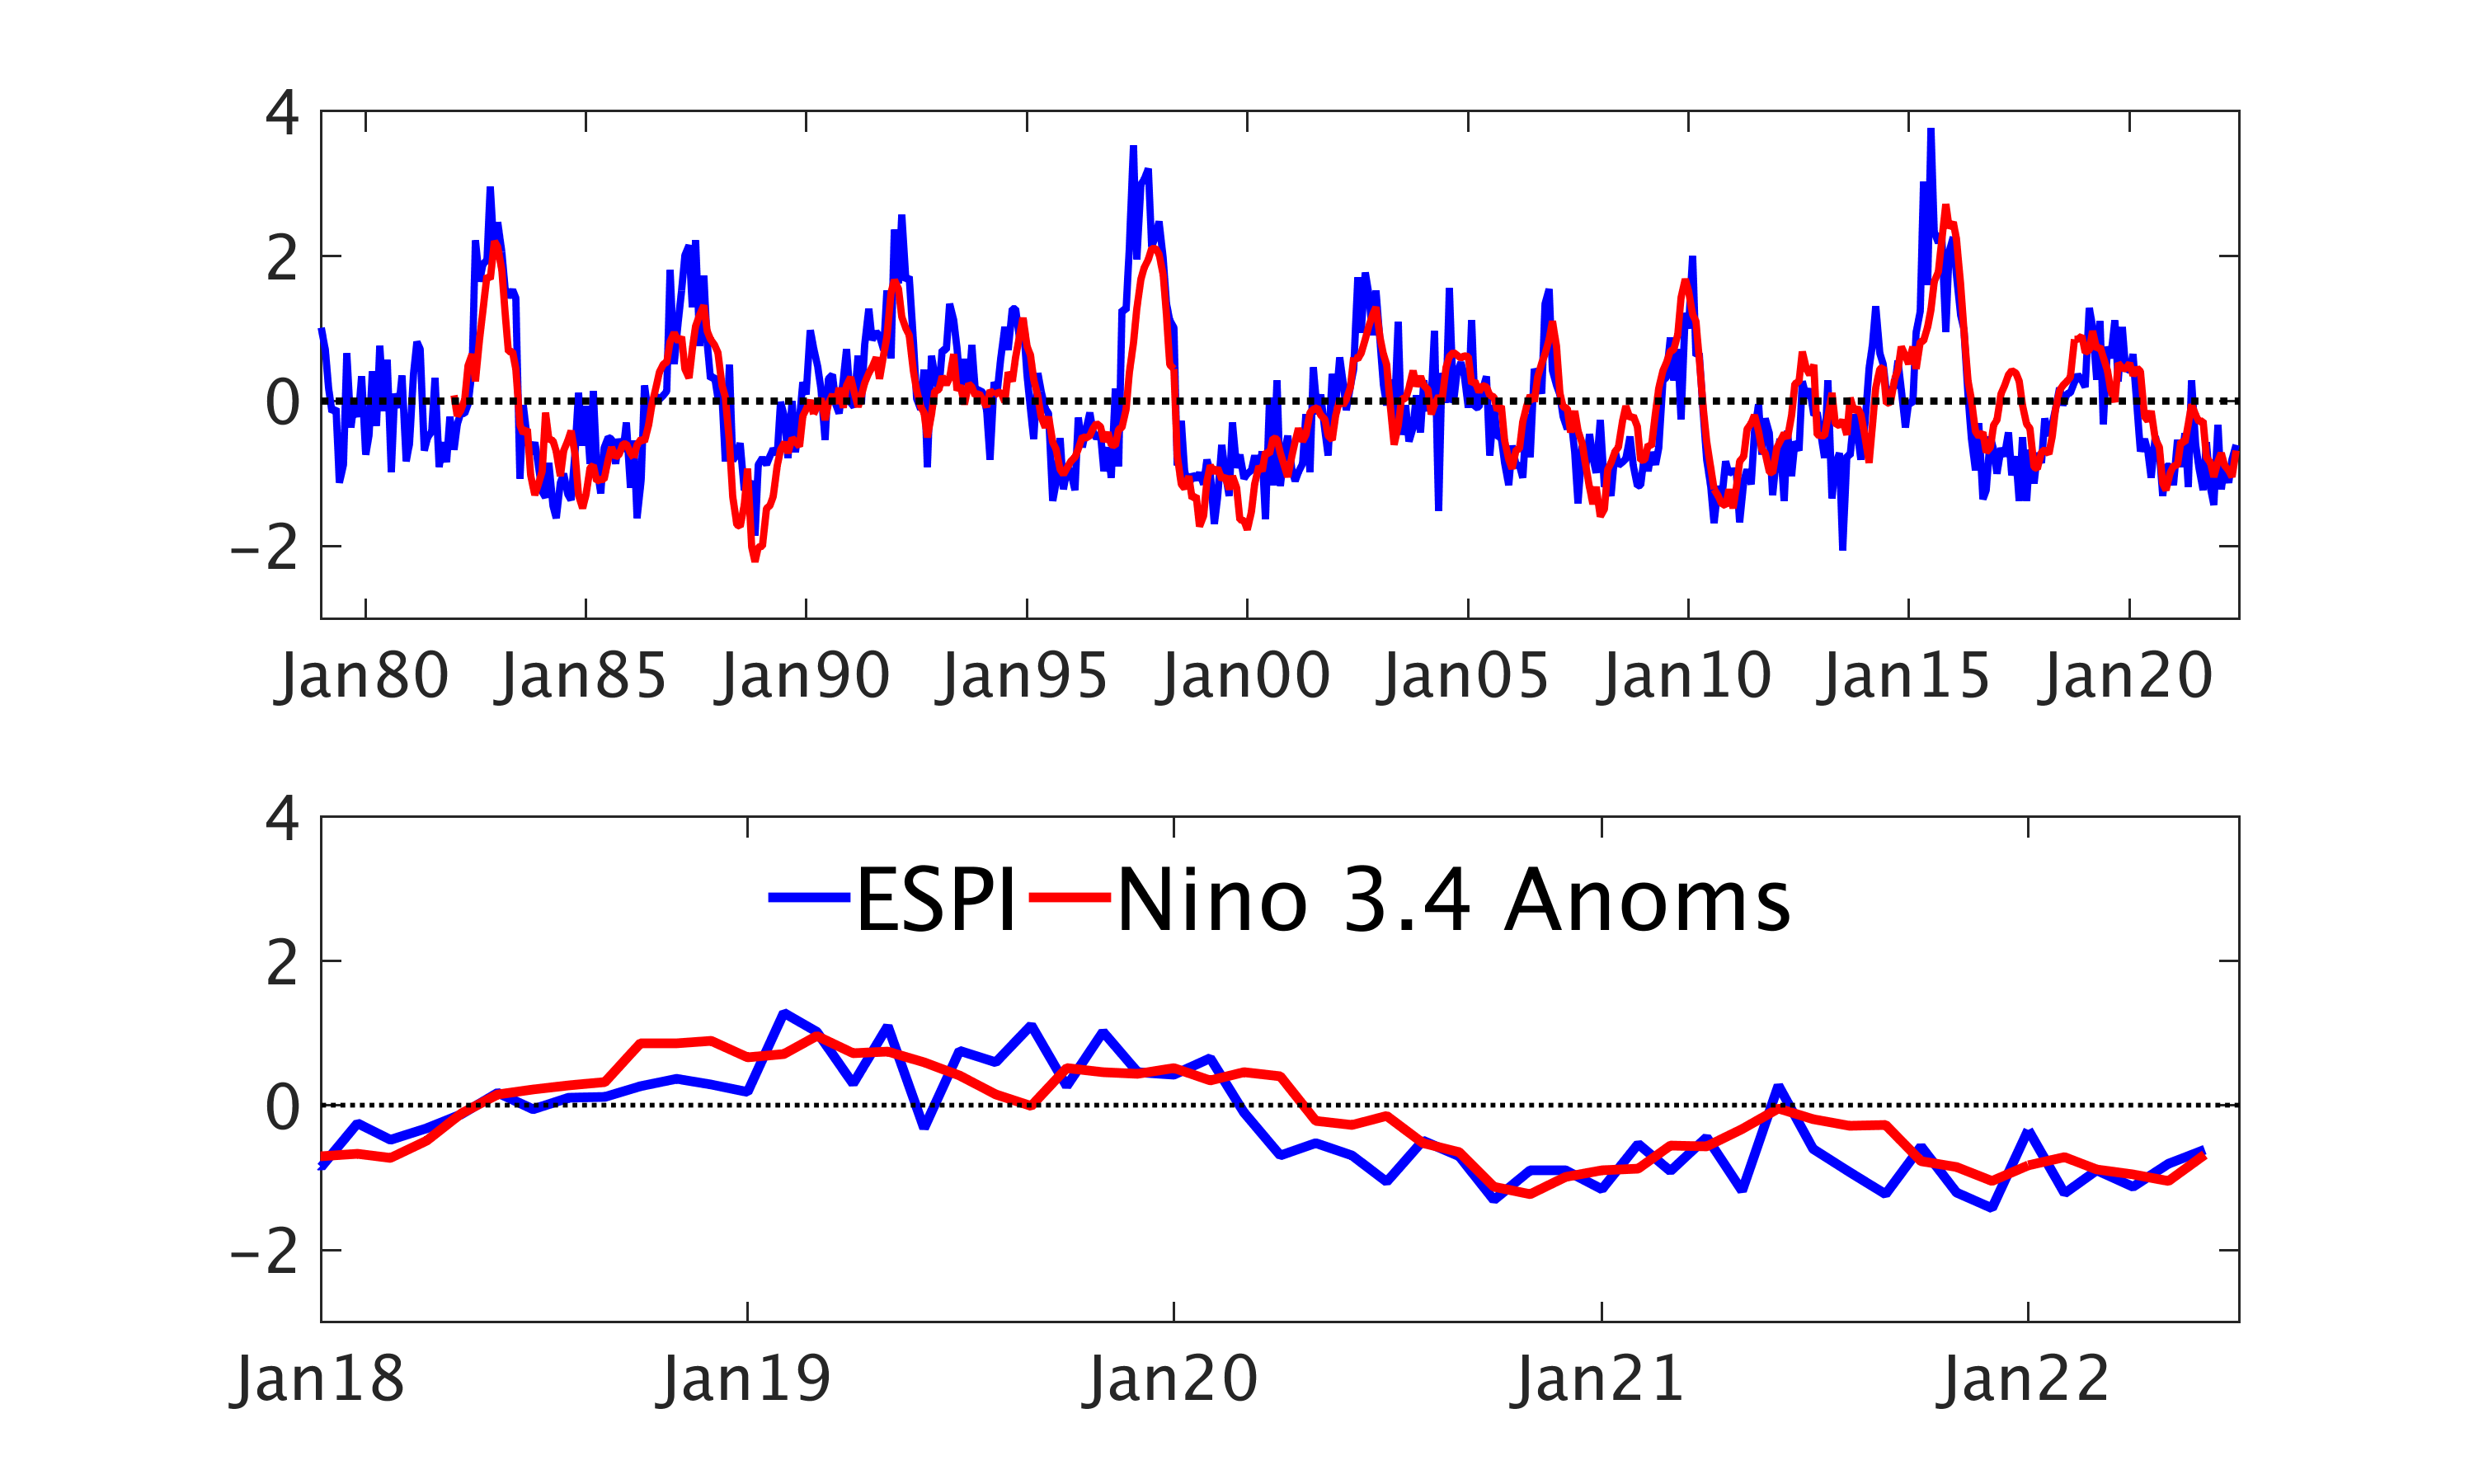 ESPI INdex compared to Nino 3.4